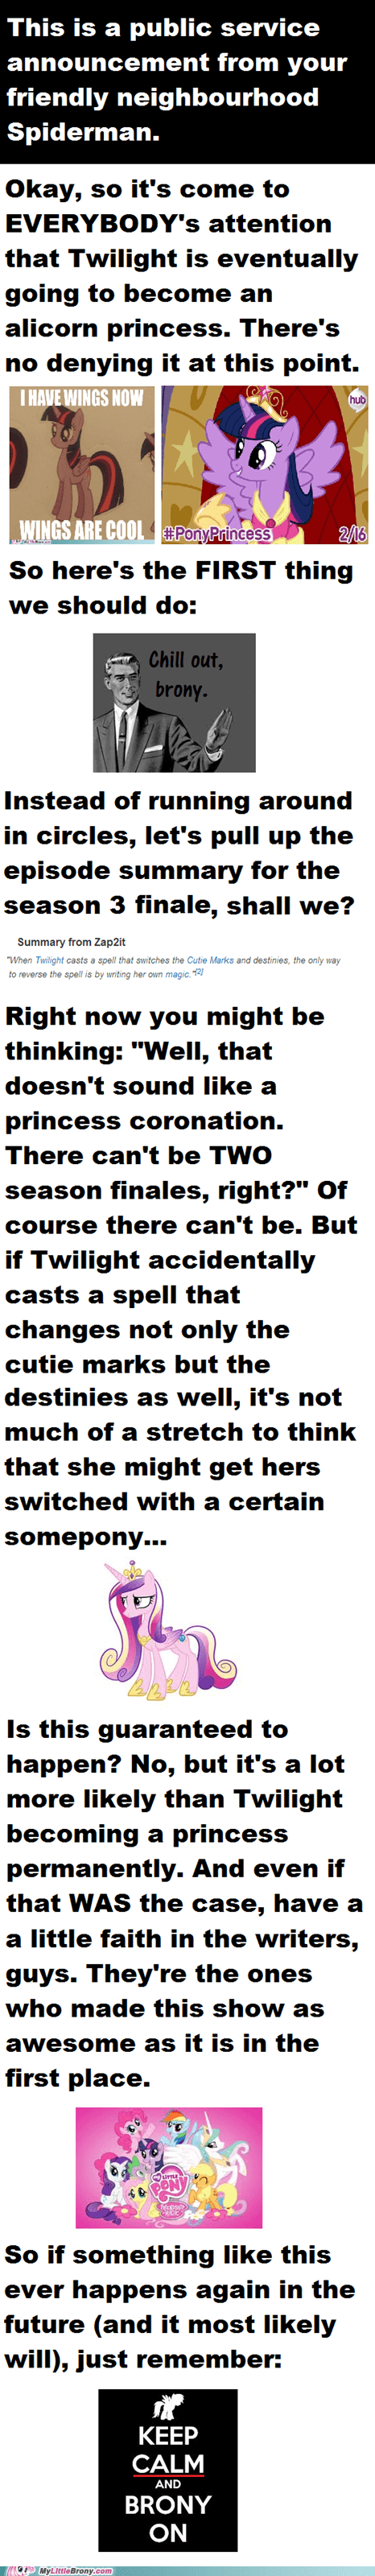 finale psa princess twilight everything will be alright